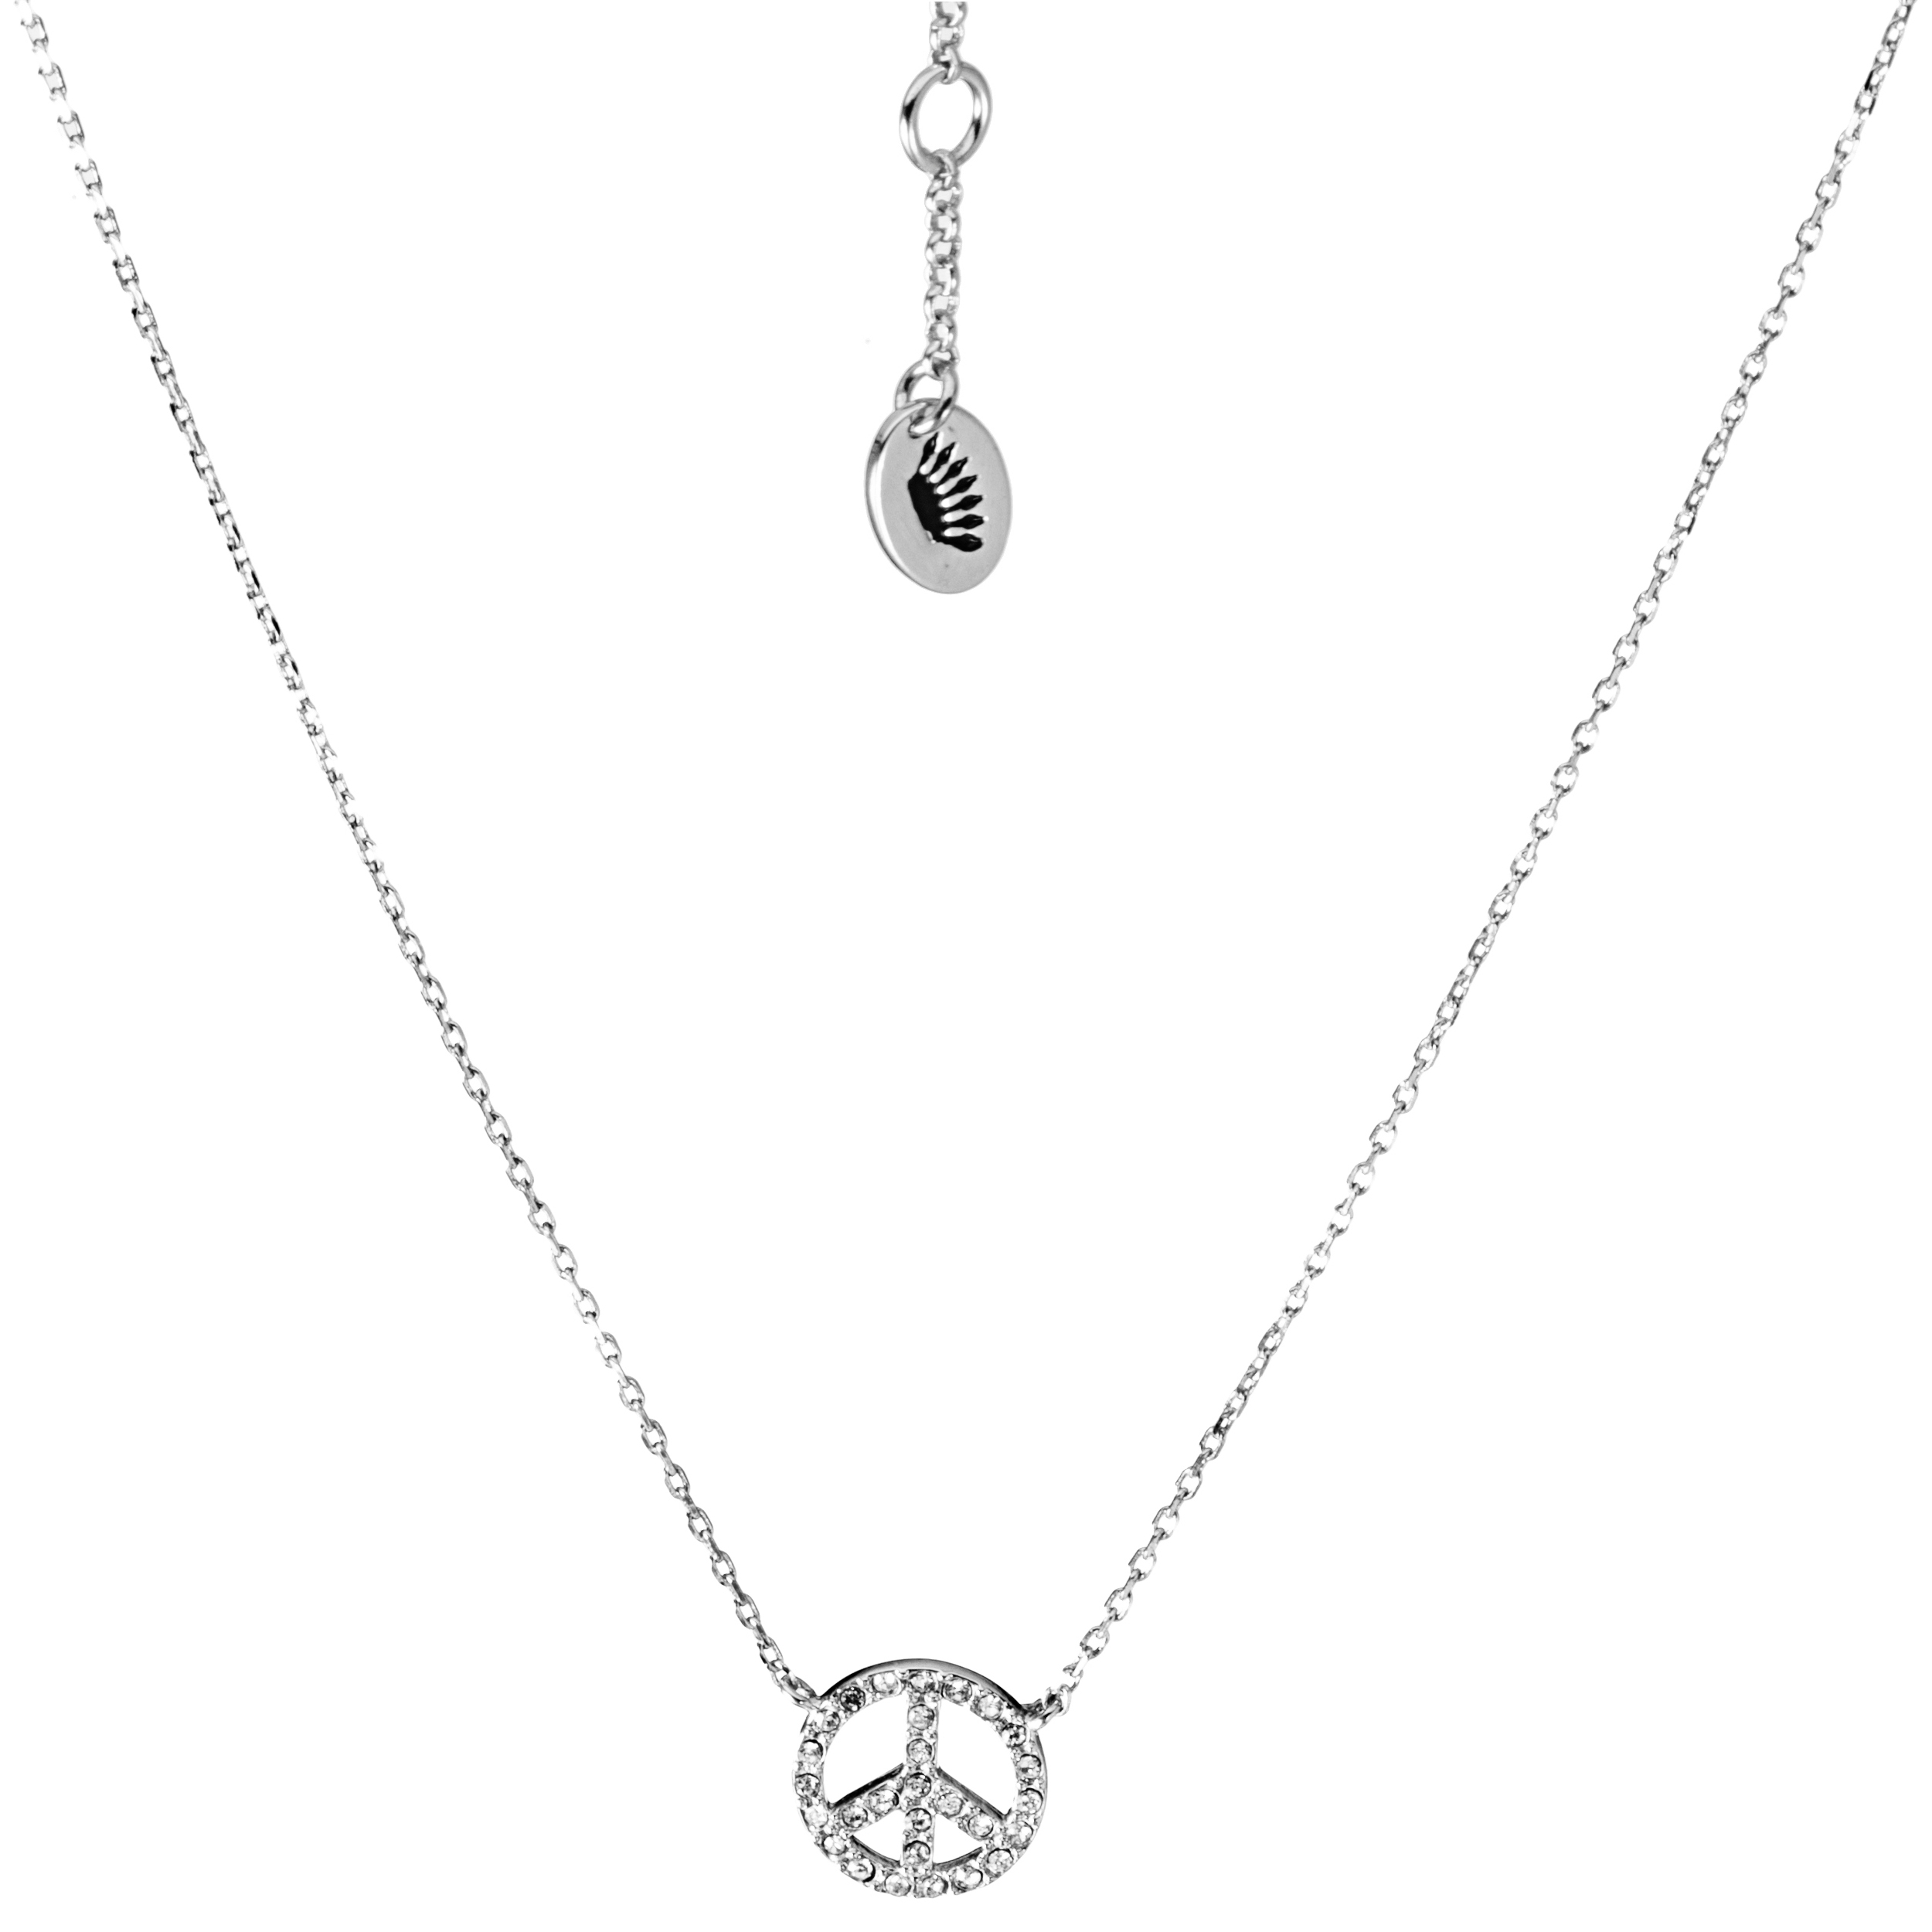 Juicy Couture Peace Sign Pendant Necklace-Silver